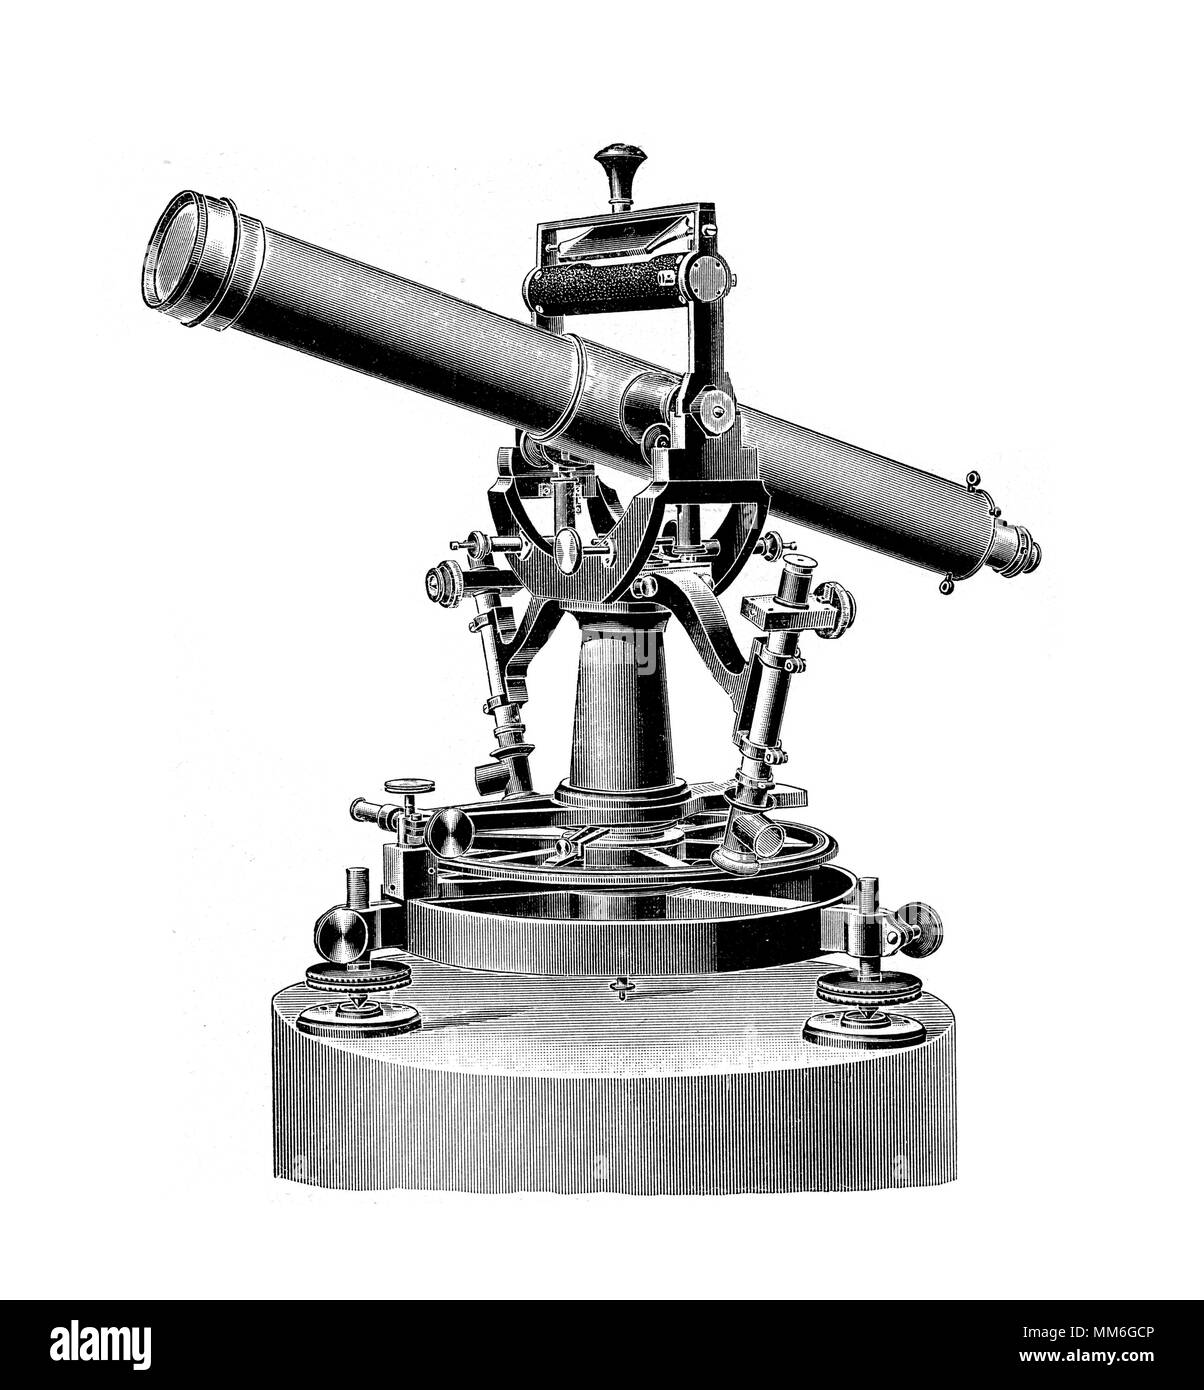 theodolite, precision instrument measuring angles with a movable telescope - Stock Image